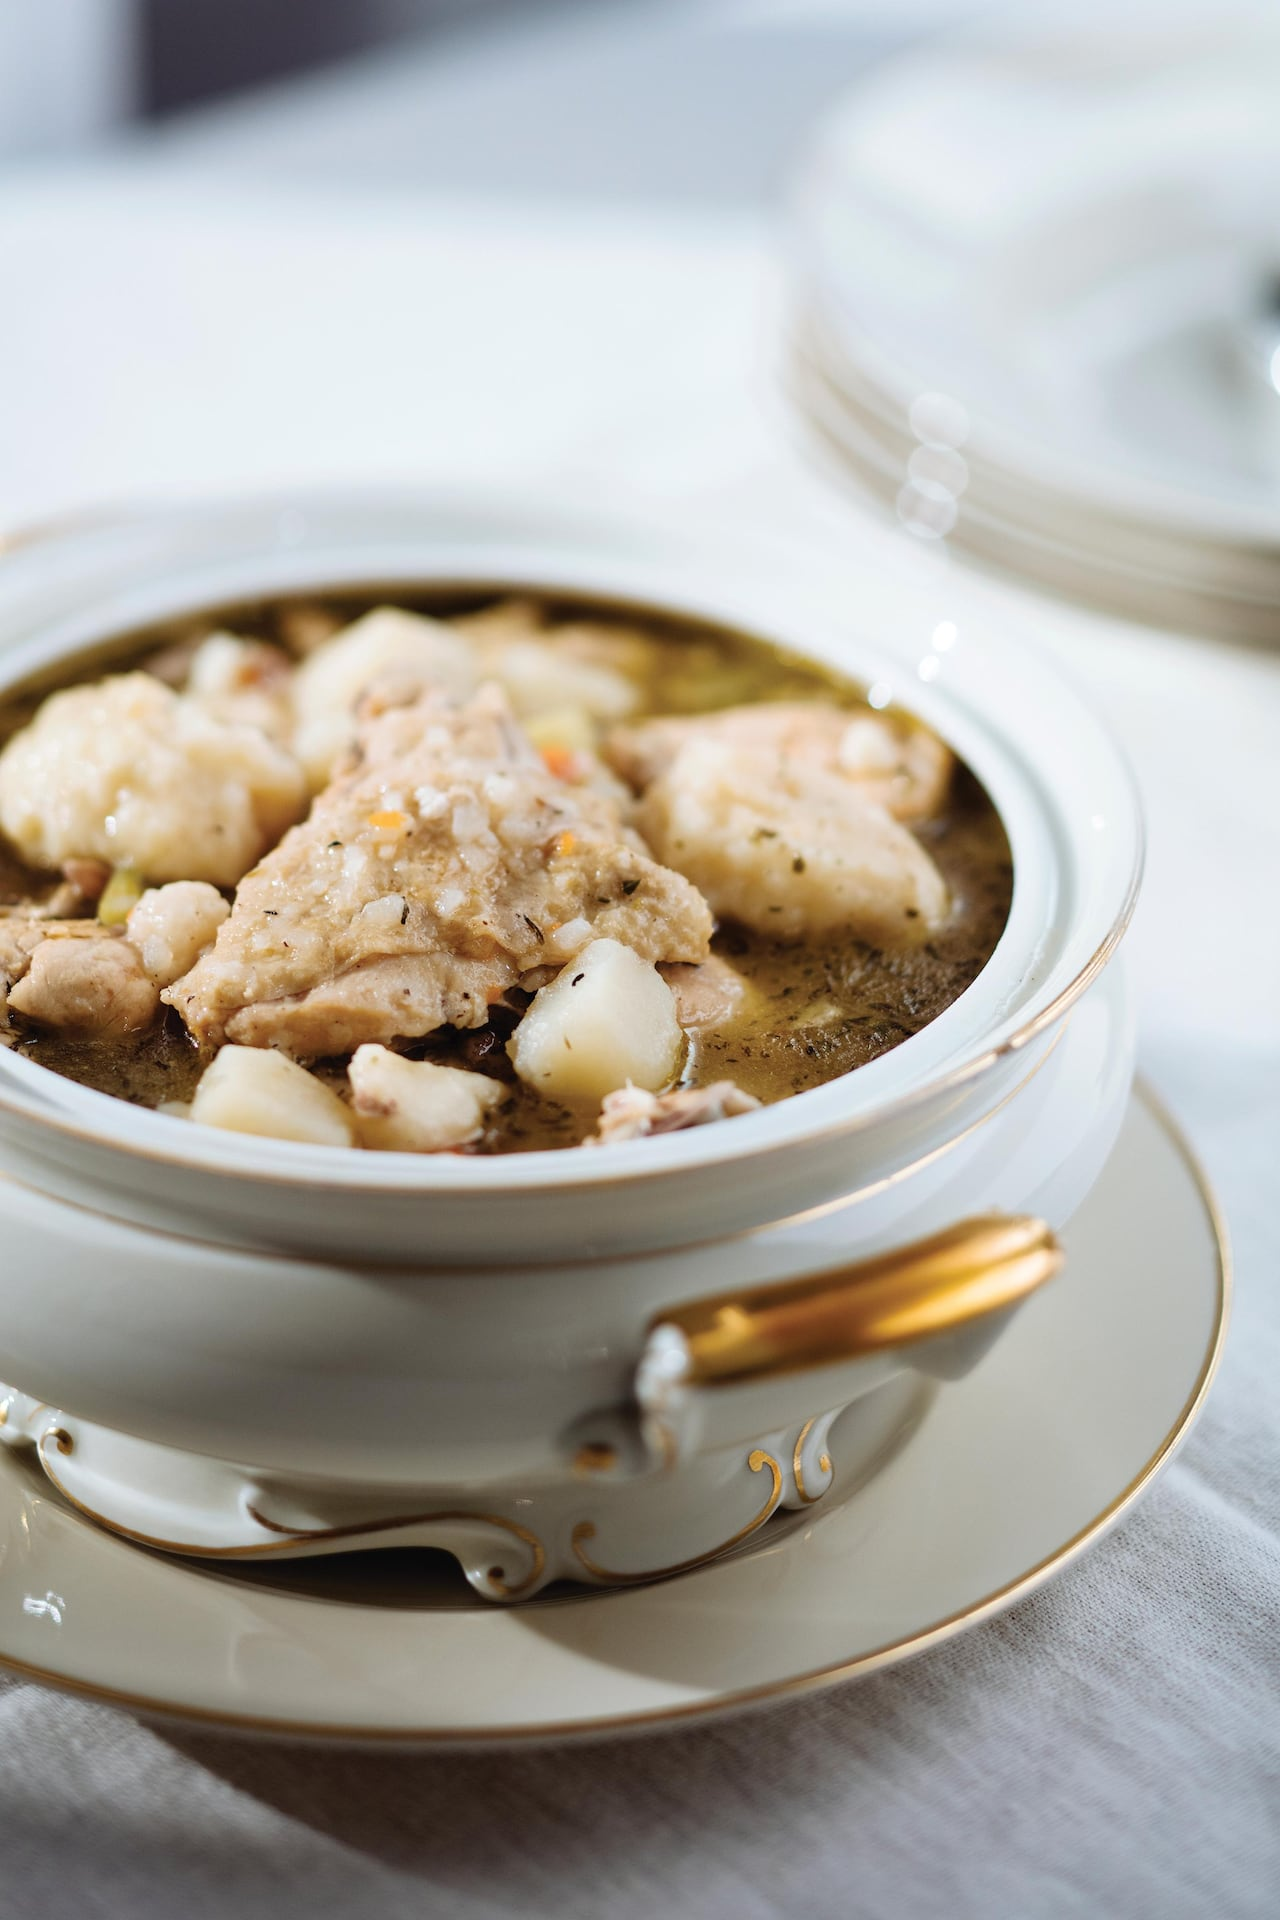 Make this Cheticamp-style chicken fricot with dumplings for a simple stew to keep you cozy